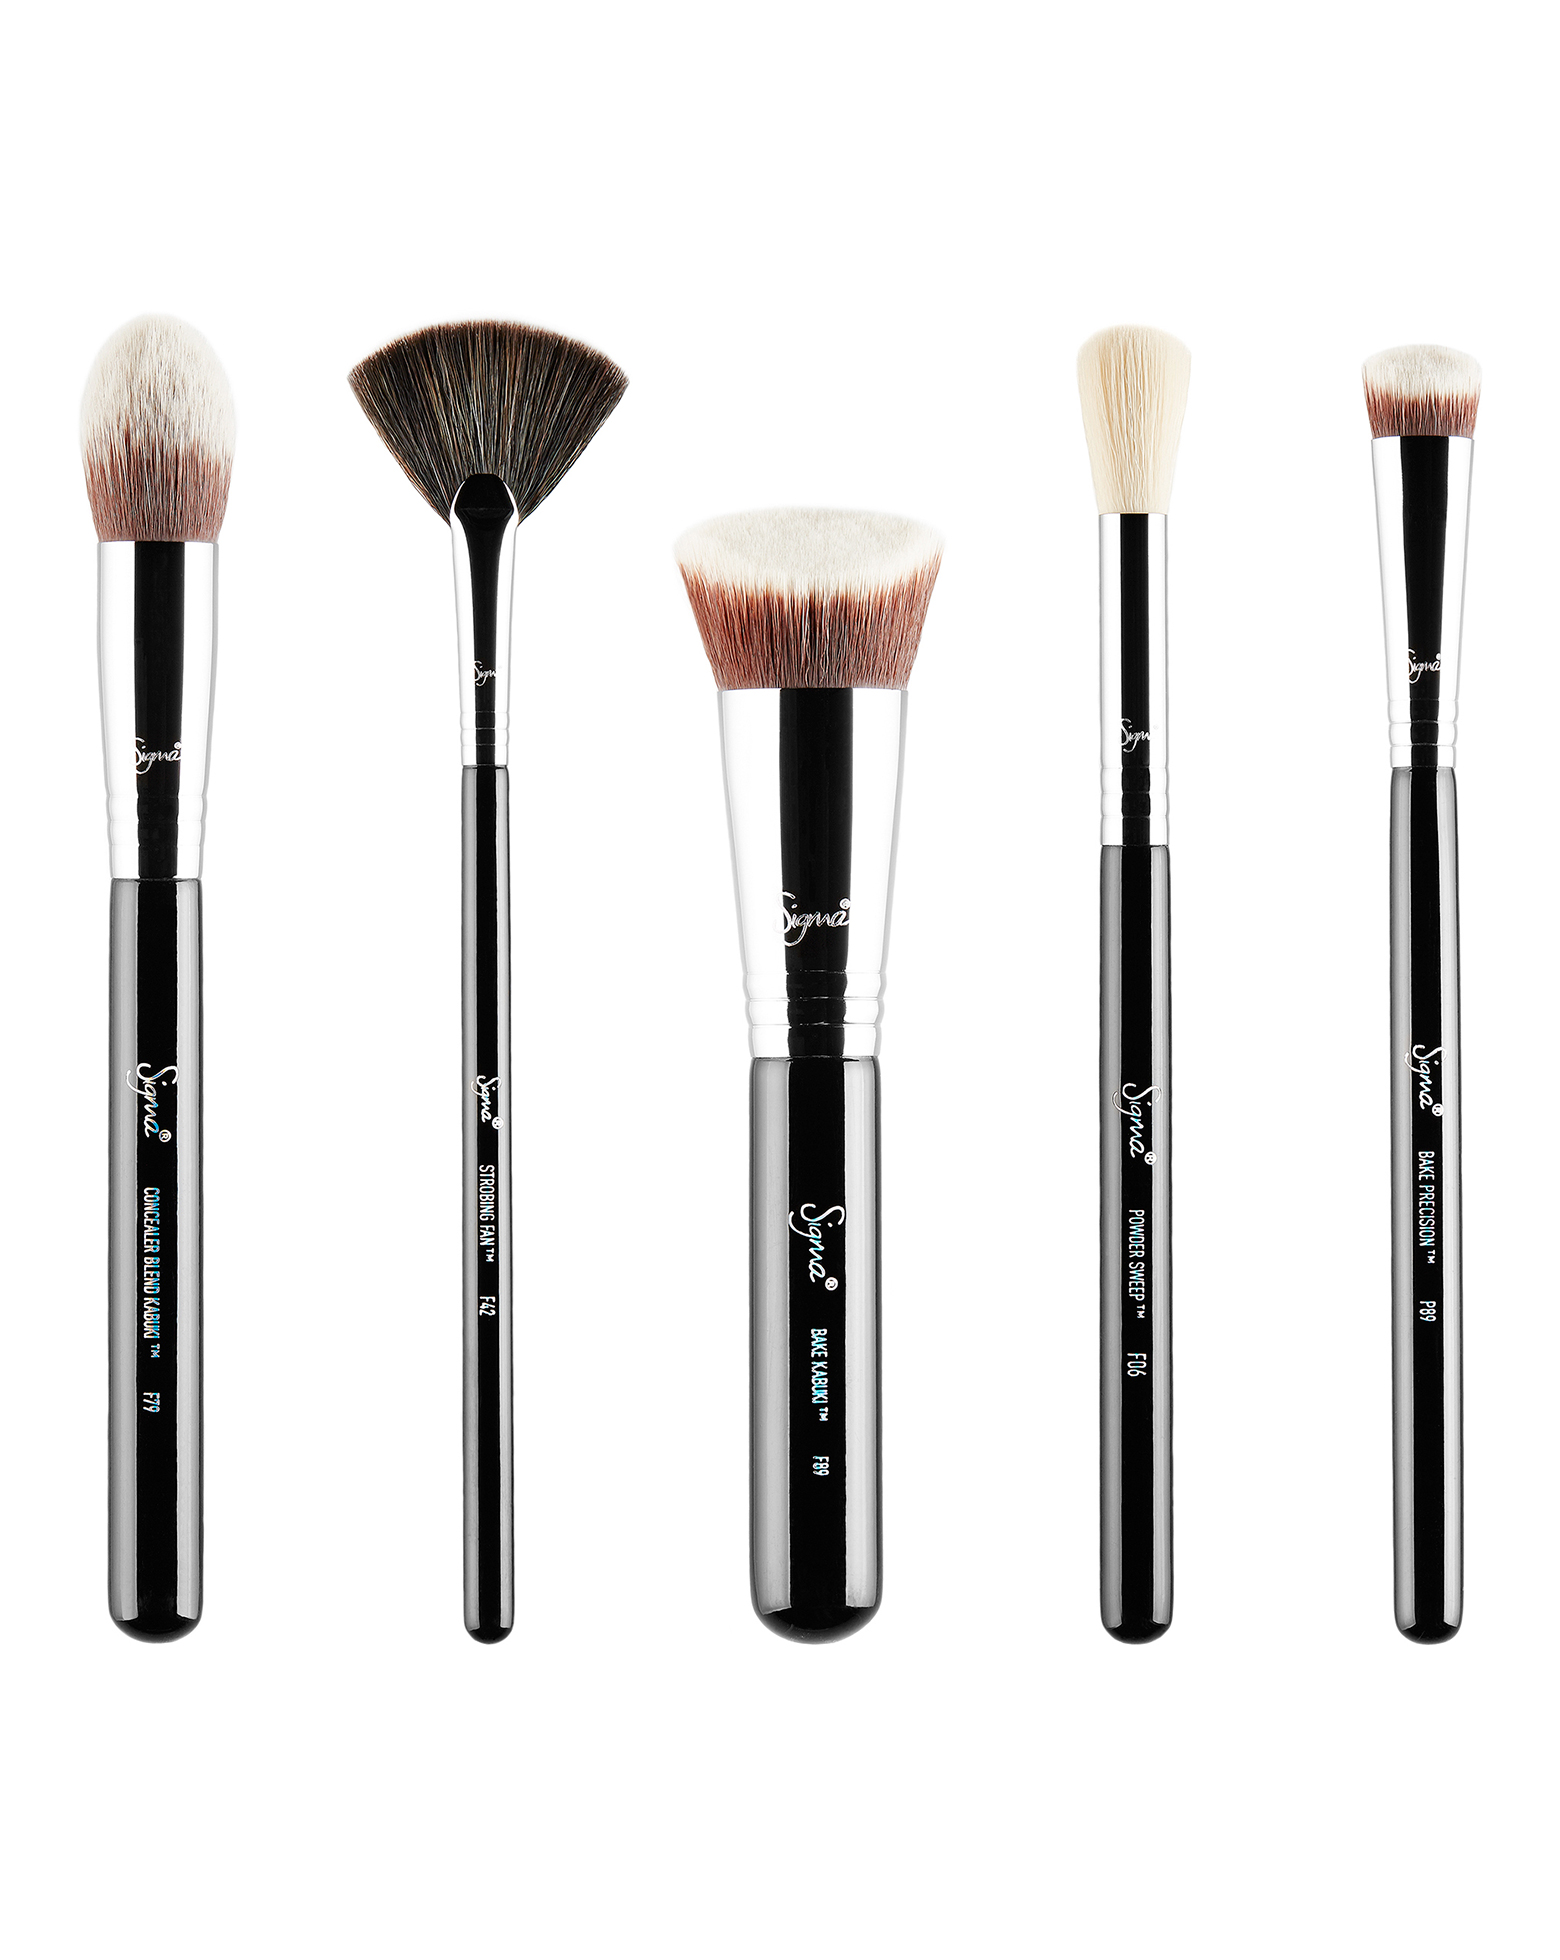 7 Gorgeous Sigma Beauty Gifts for Christmas 2015 7 Gorgeous Sigma Beauty Gifts for Christmas 2015 new foto